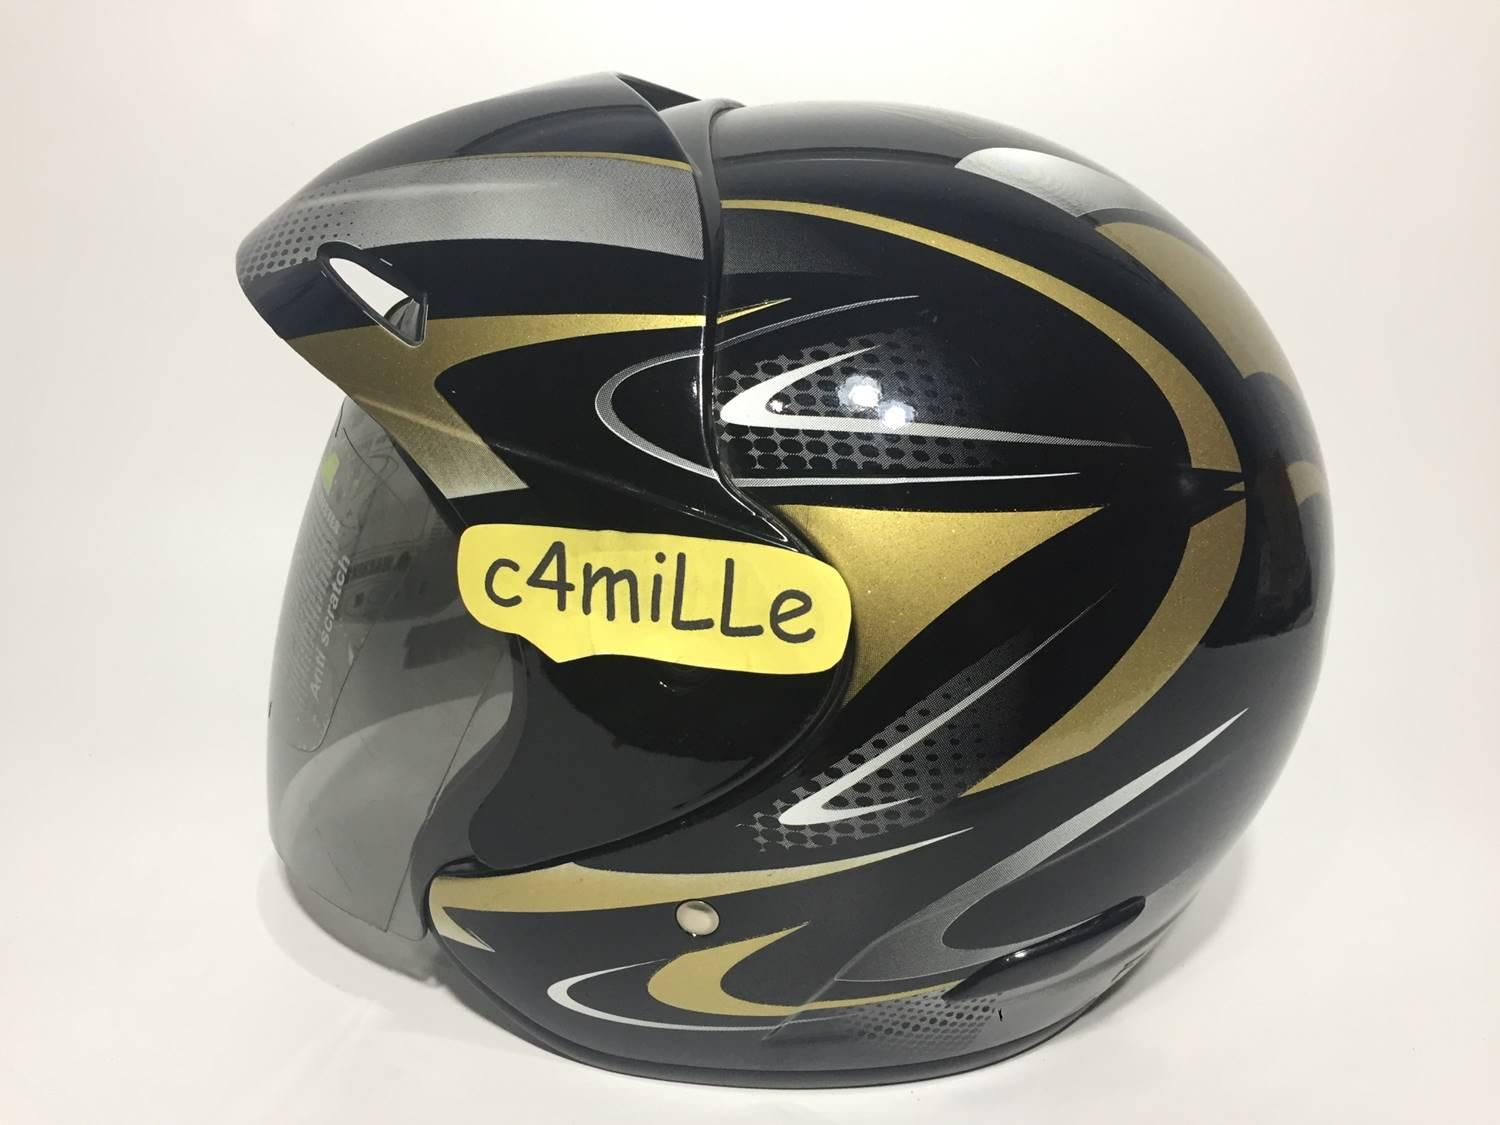 HELM BMC 560R #27 BLACK GOLD HALF FACE 560